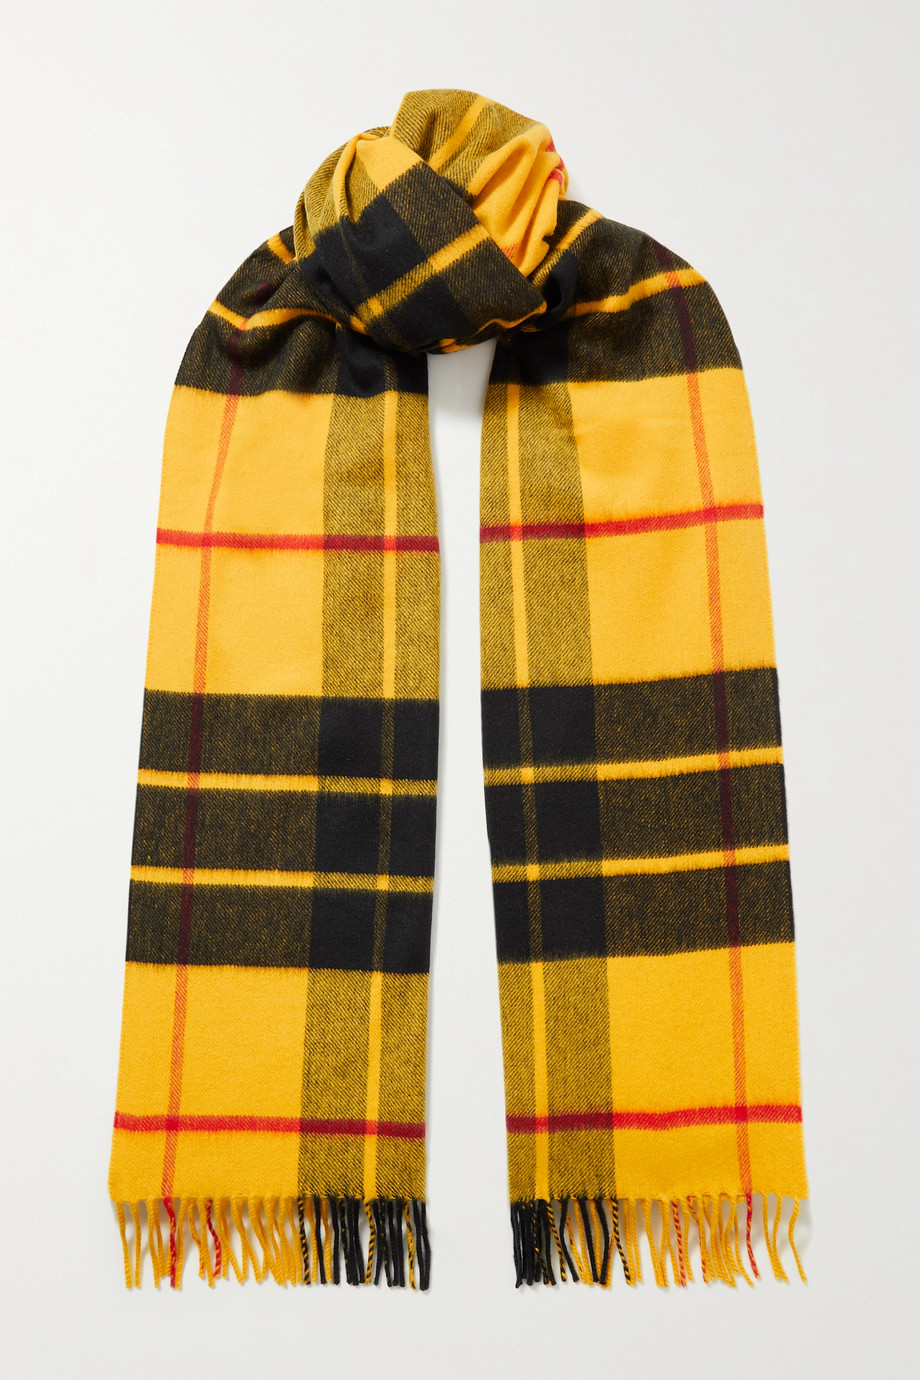 JOHNSTONS OF ELGIN + NET SUSTAIN fringed checked merino wool scarf